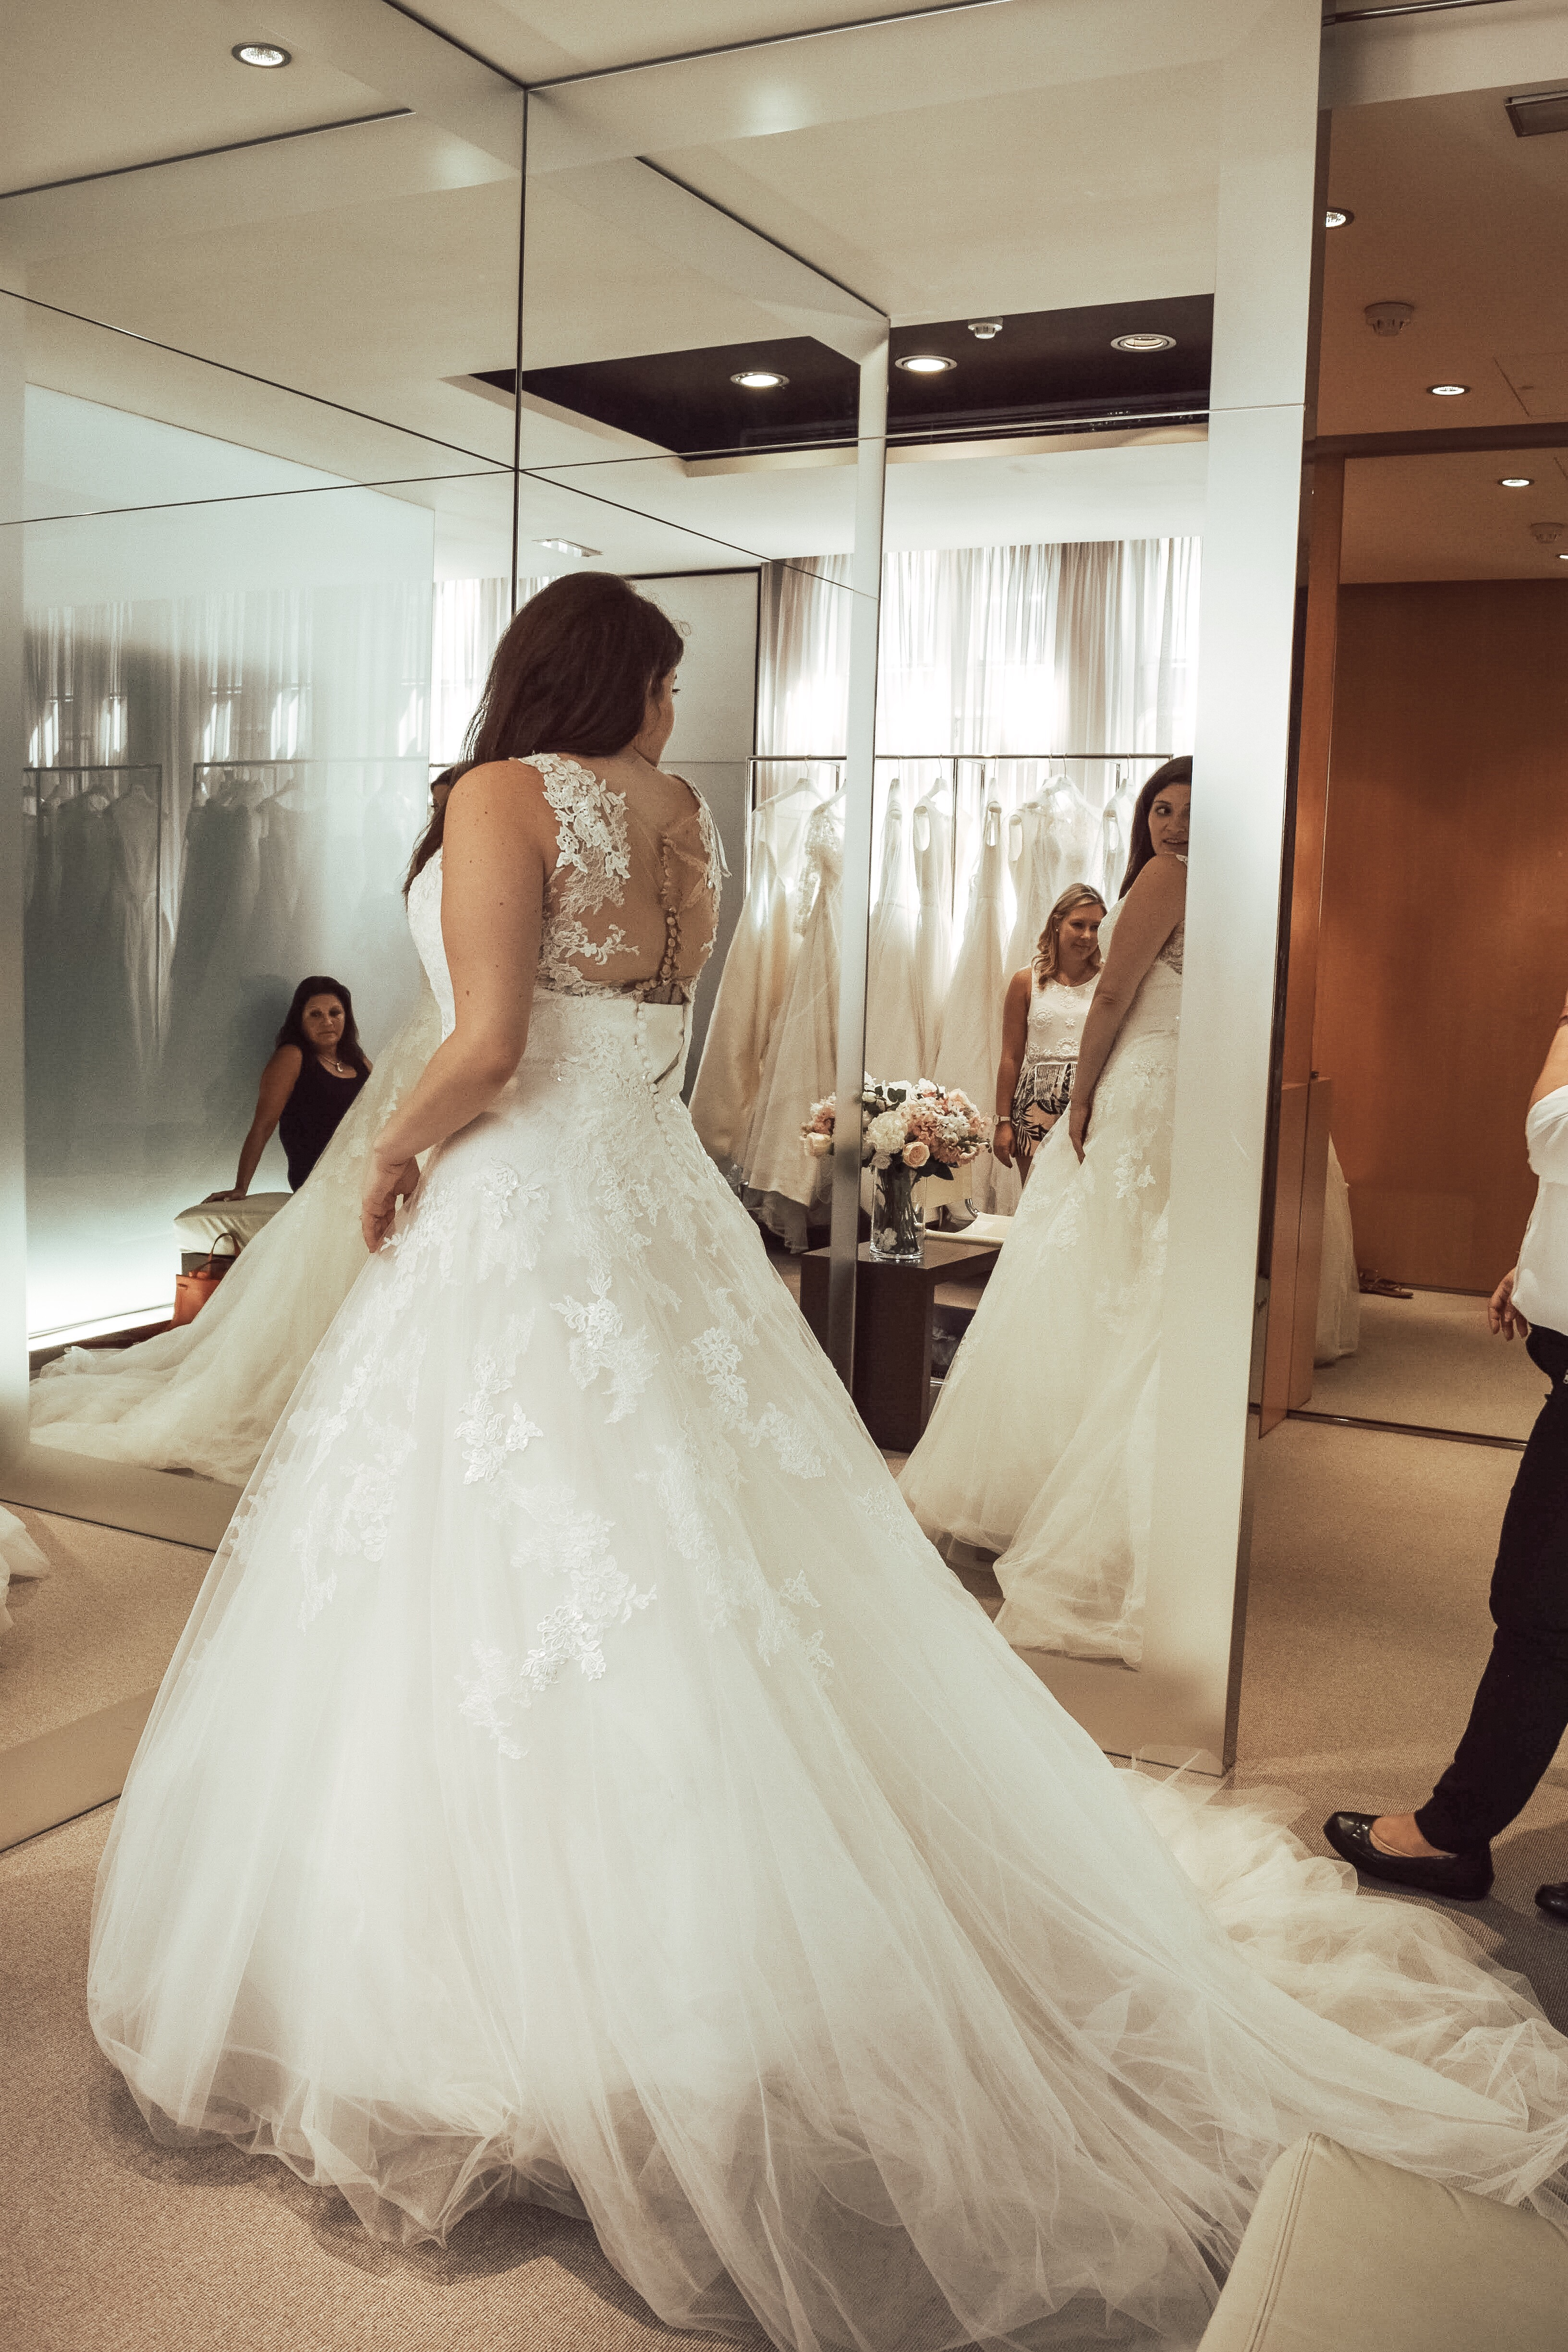 The Perfect Wedding.Tips For Finding The Perfect Wedding Dress Mongan Moments